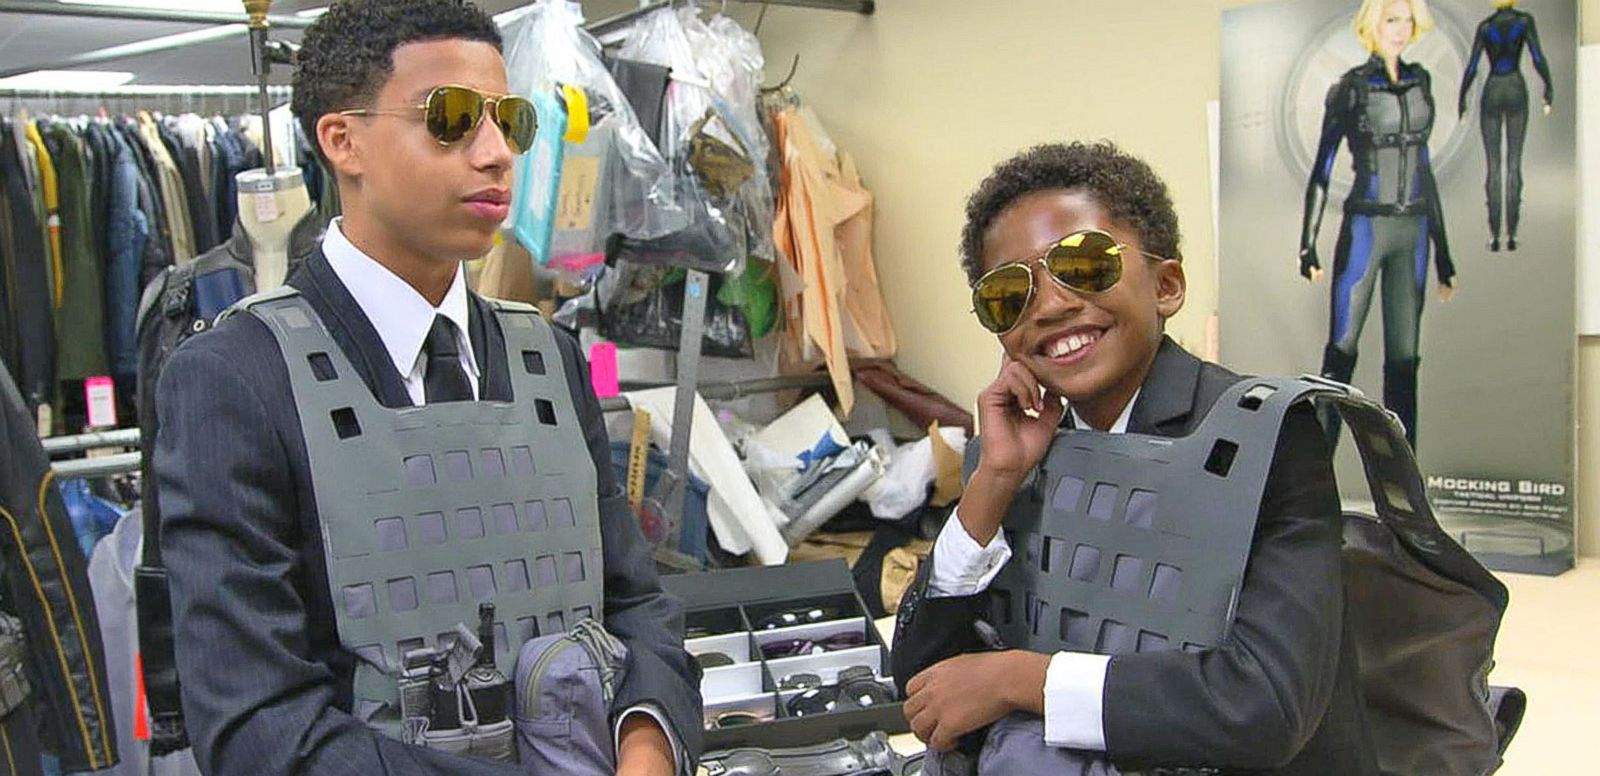 VIDEO: Stars of 'Black-ish' Visit the 'Agents of S.H.I.E.L.D.' Set